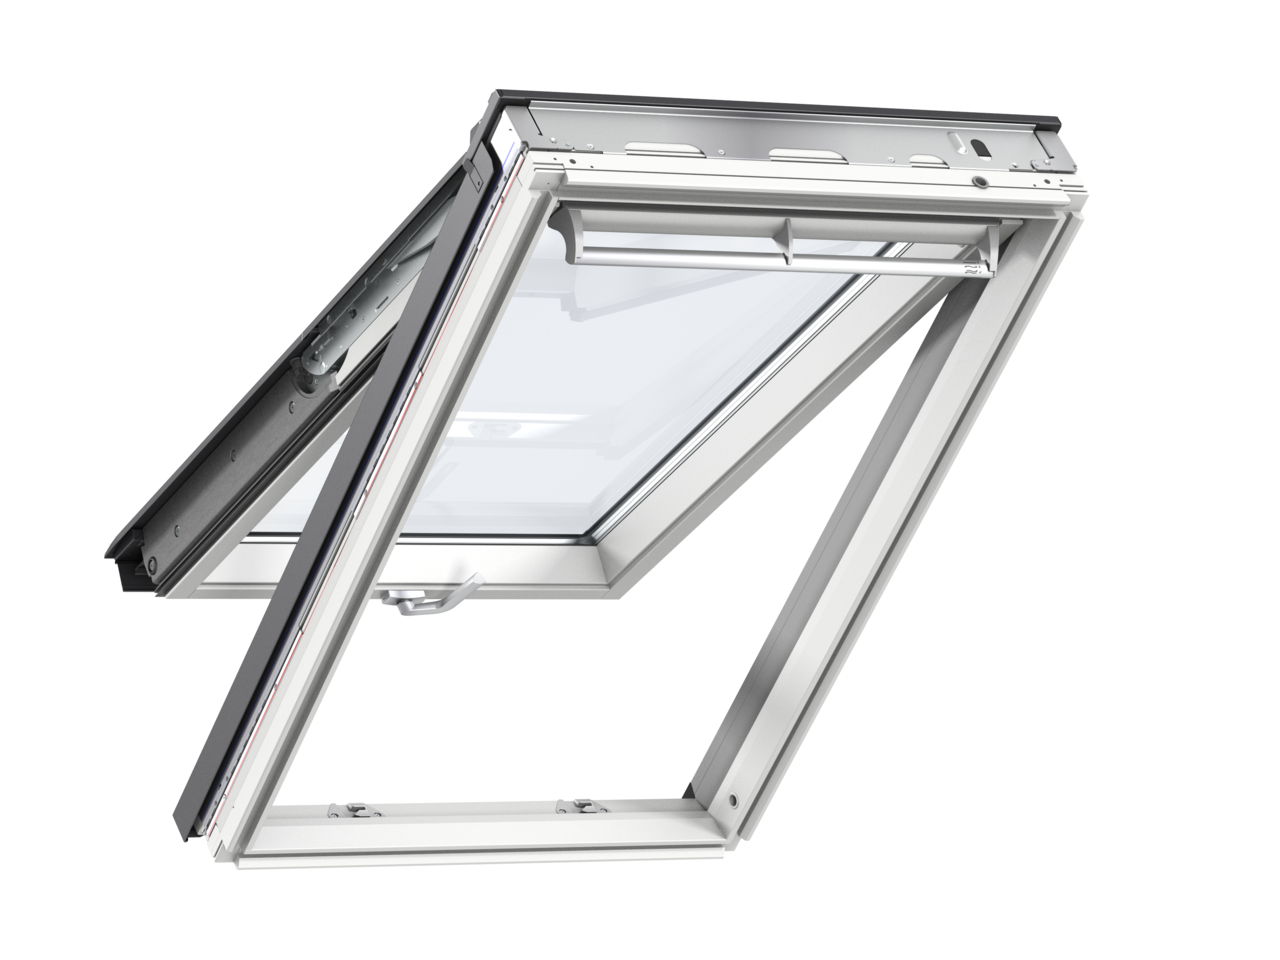 Velux GPL UK08 1340 x 1400mm Top Hung 60Pane Roof Window - White Painted